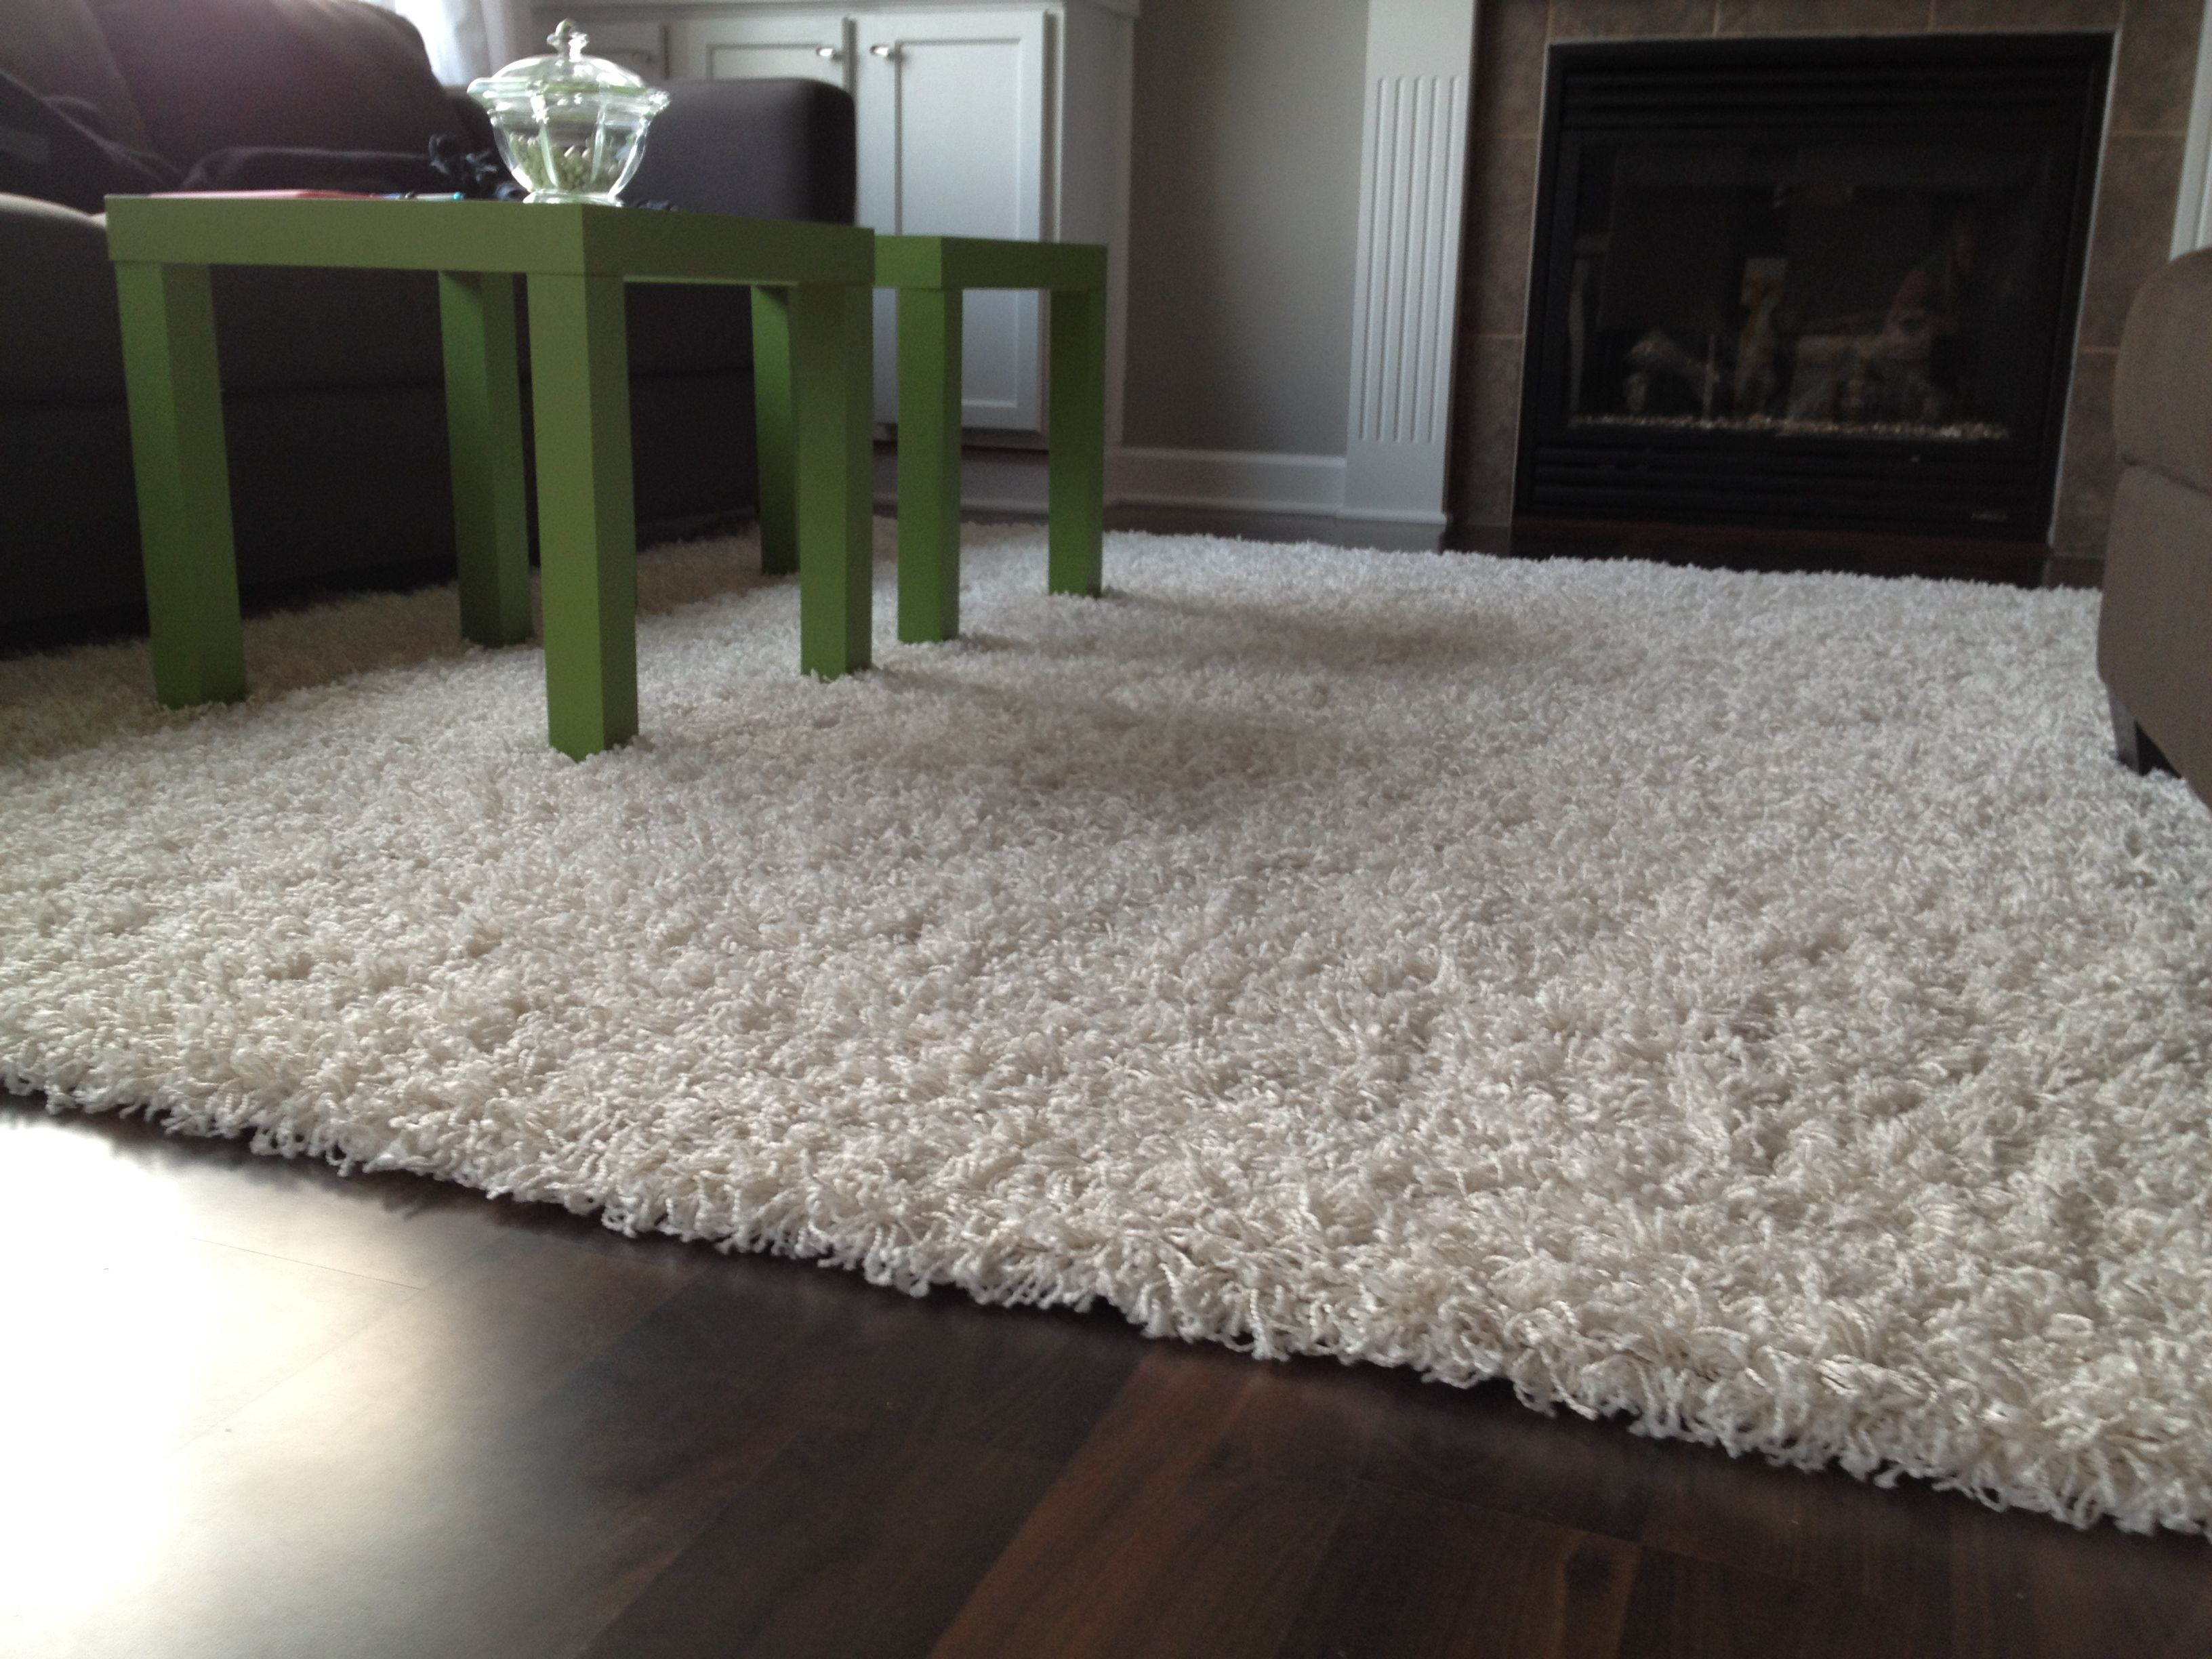 Living Room Cute White Large Area Rugs For Living Room Design With Hand  Tufted White Living Room Shaggy Area Rug Also Green Coffe Table And Dark  Brown ...